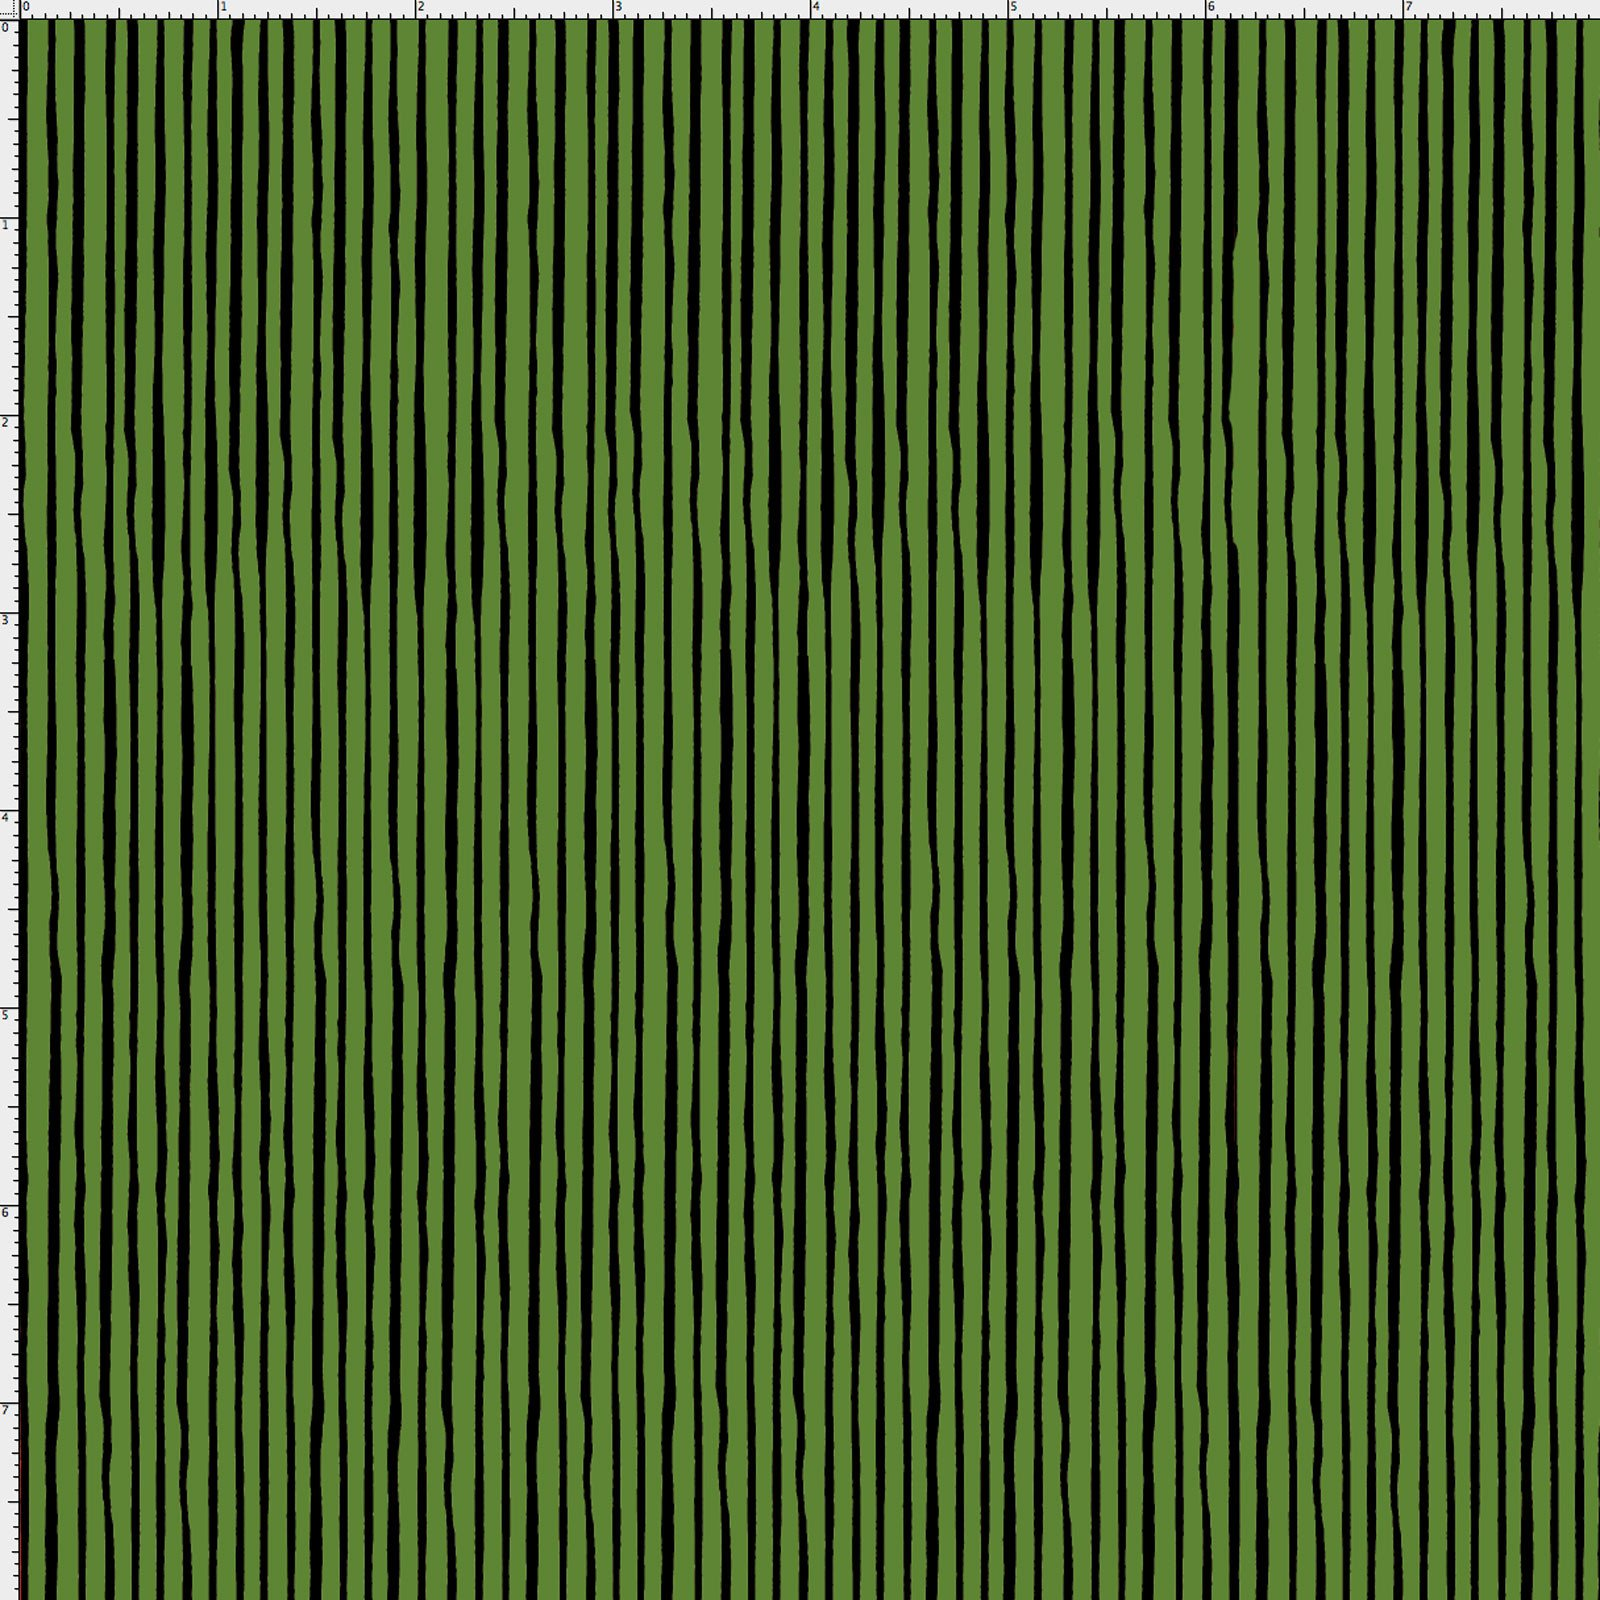 【Loralie Designs】- Quirky Pin Stripe Forest Green -(ULH-168)